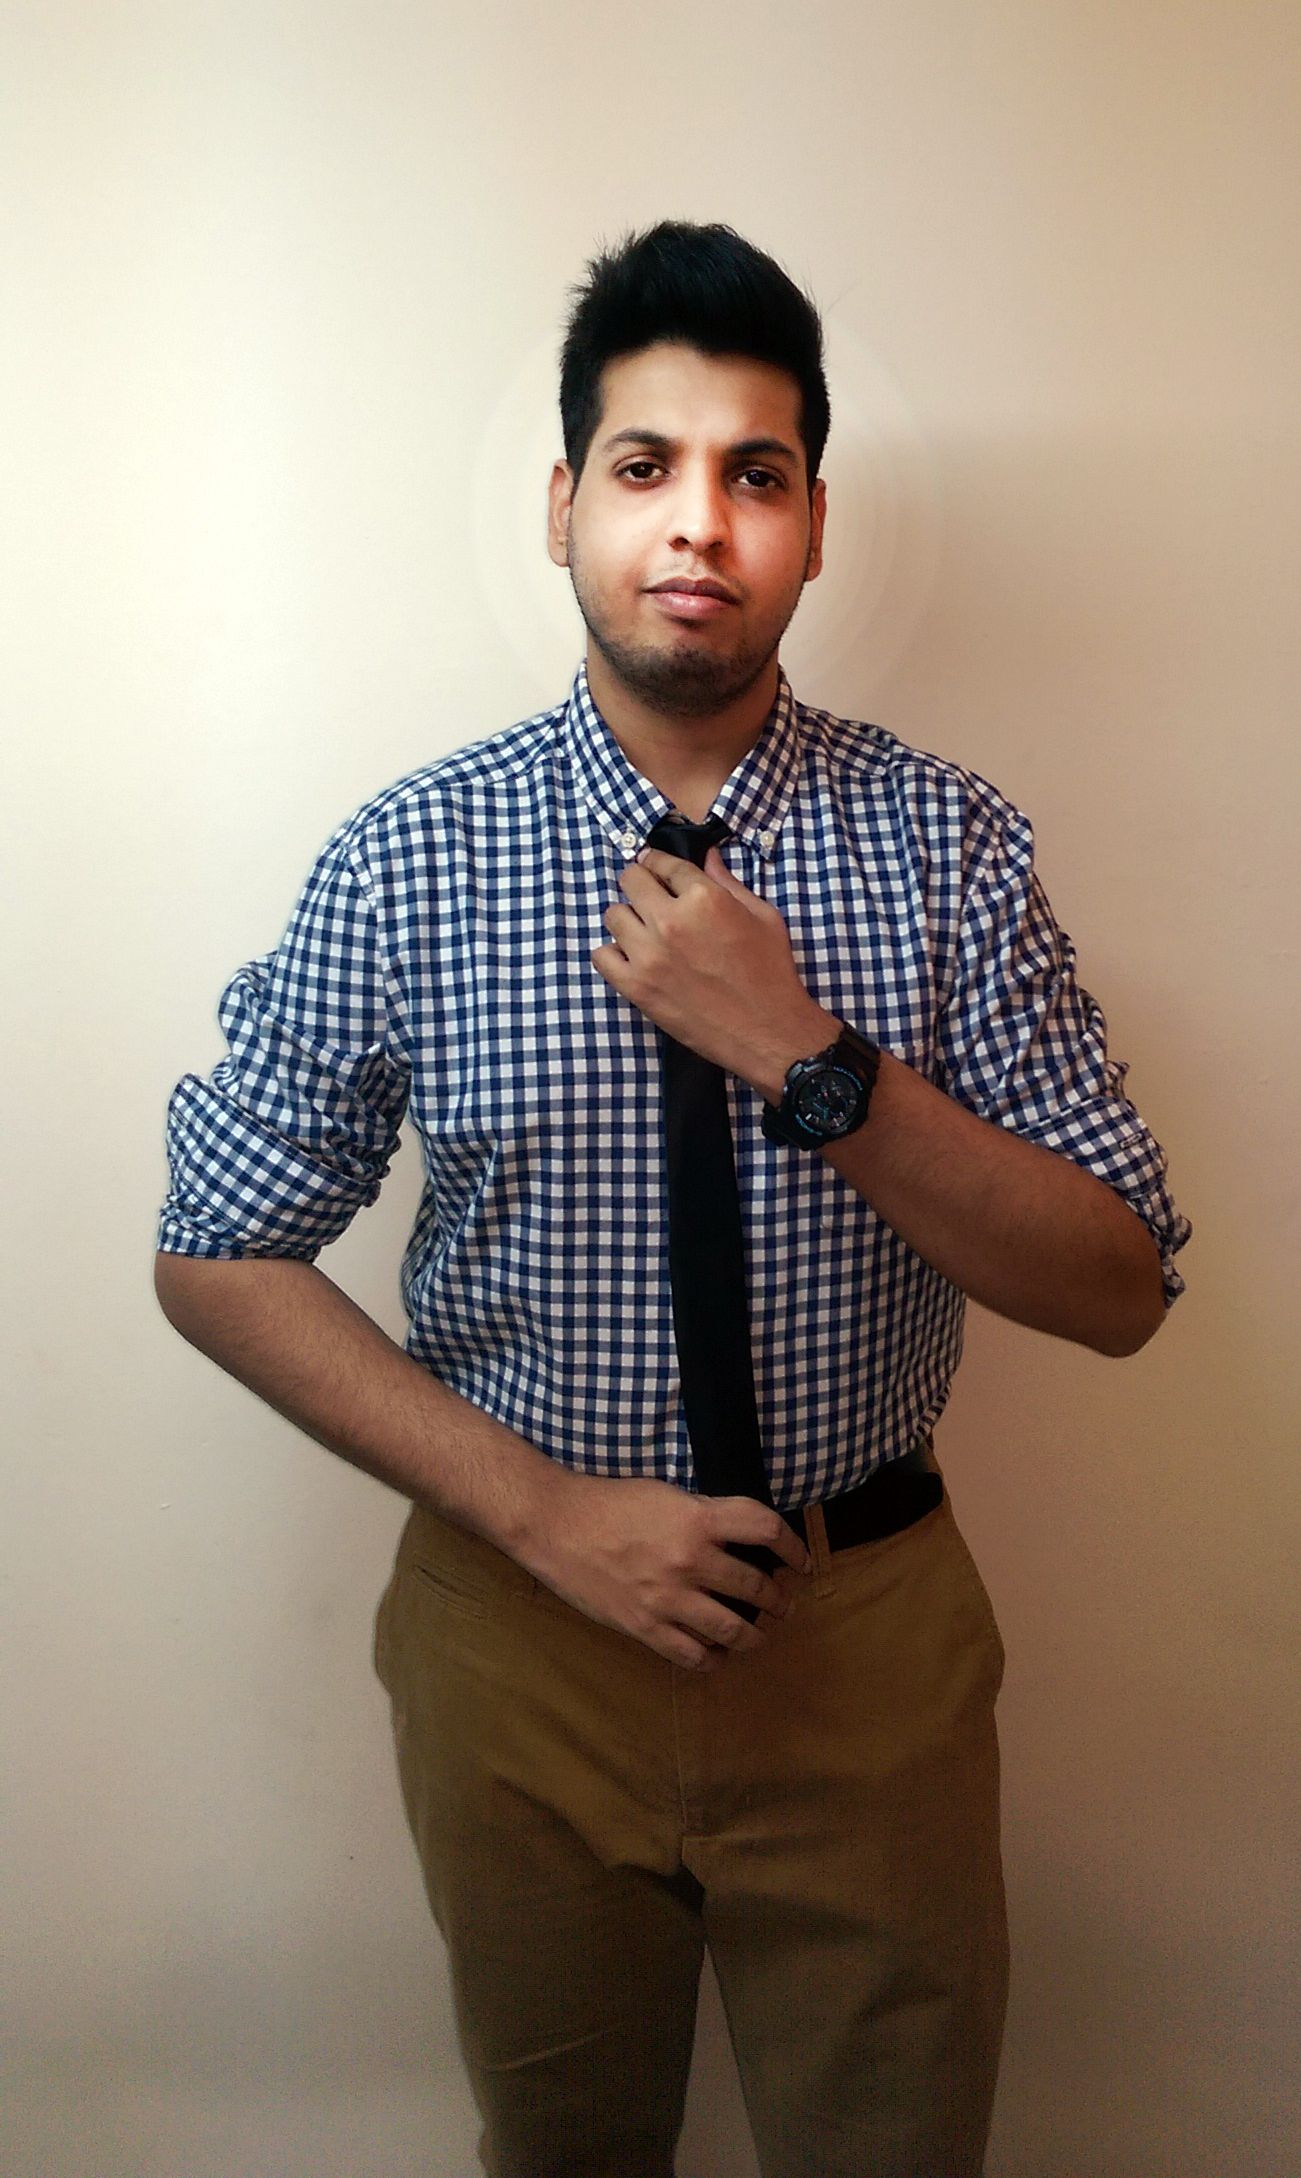 a2b3847e6 Blue checkered shirt, black tie, black belt, and brown khaki's what can go  wrong? G-Shock watch as well.